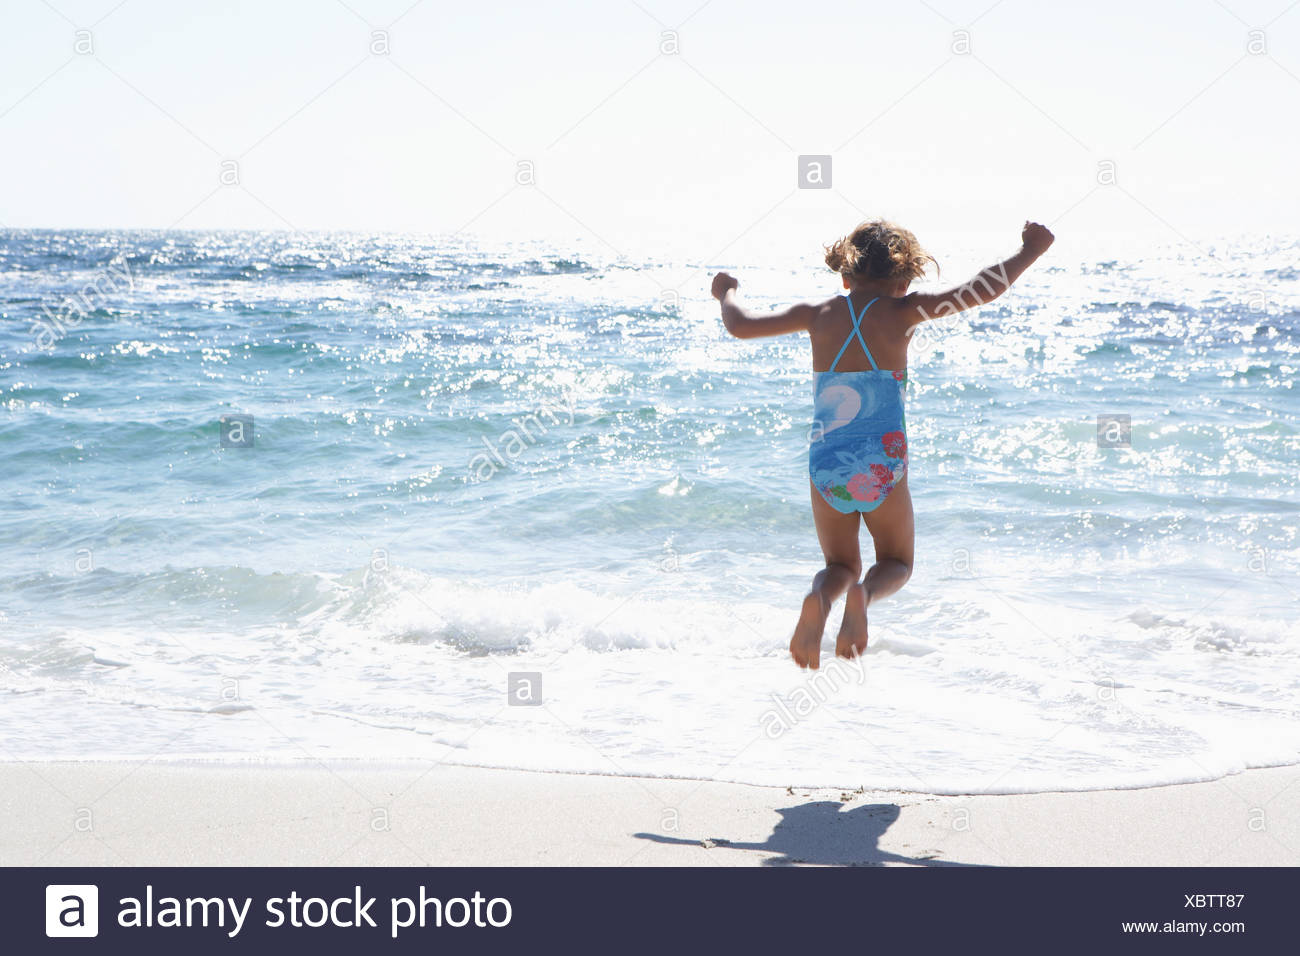 Girl 3 5 wearing swimsuit jumping above surf on sandy beach rear view sea shimmering in sunlight - Stock Image